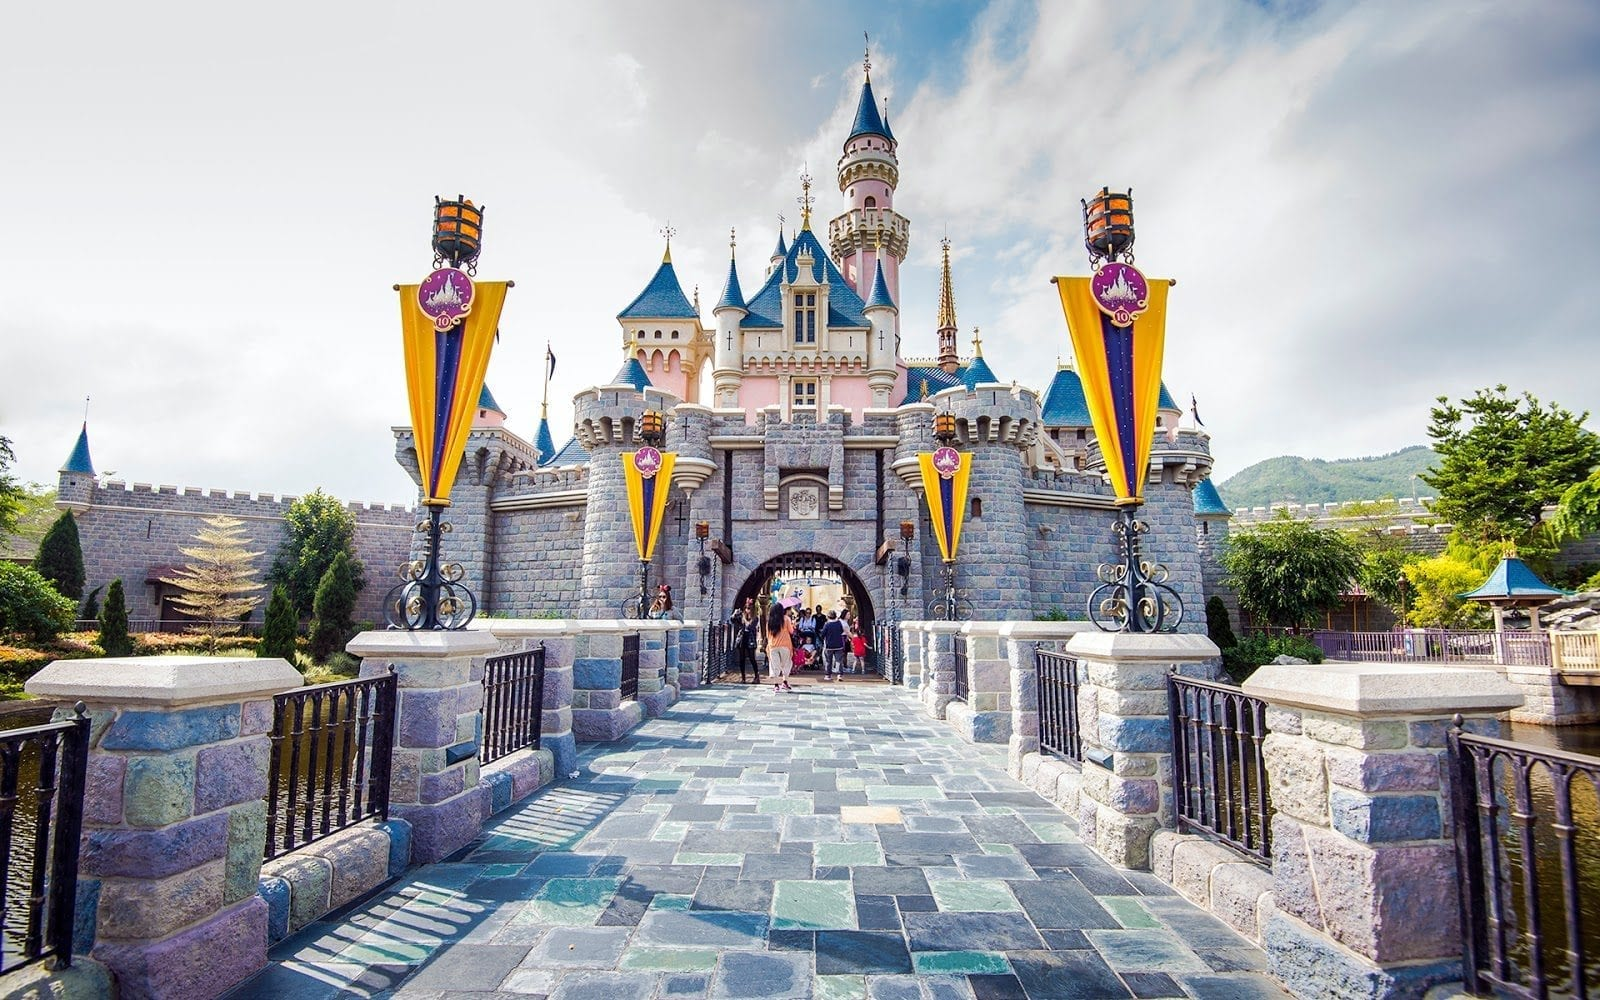 Transfer Options From Hong Kong Airport To Disneyland